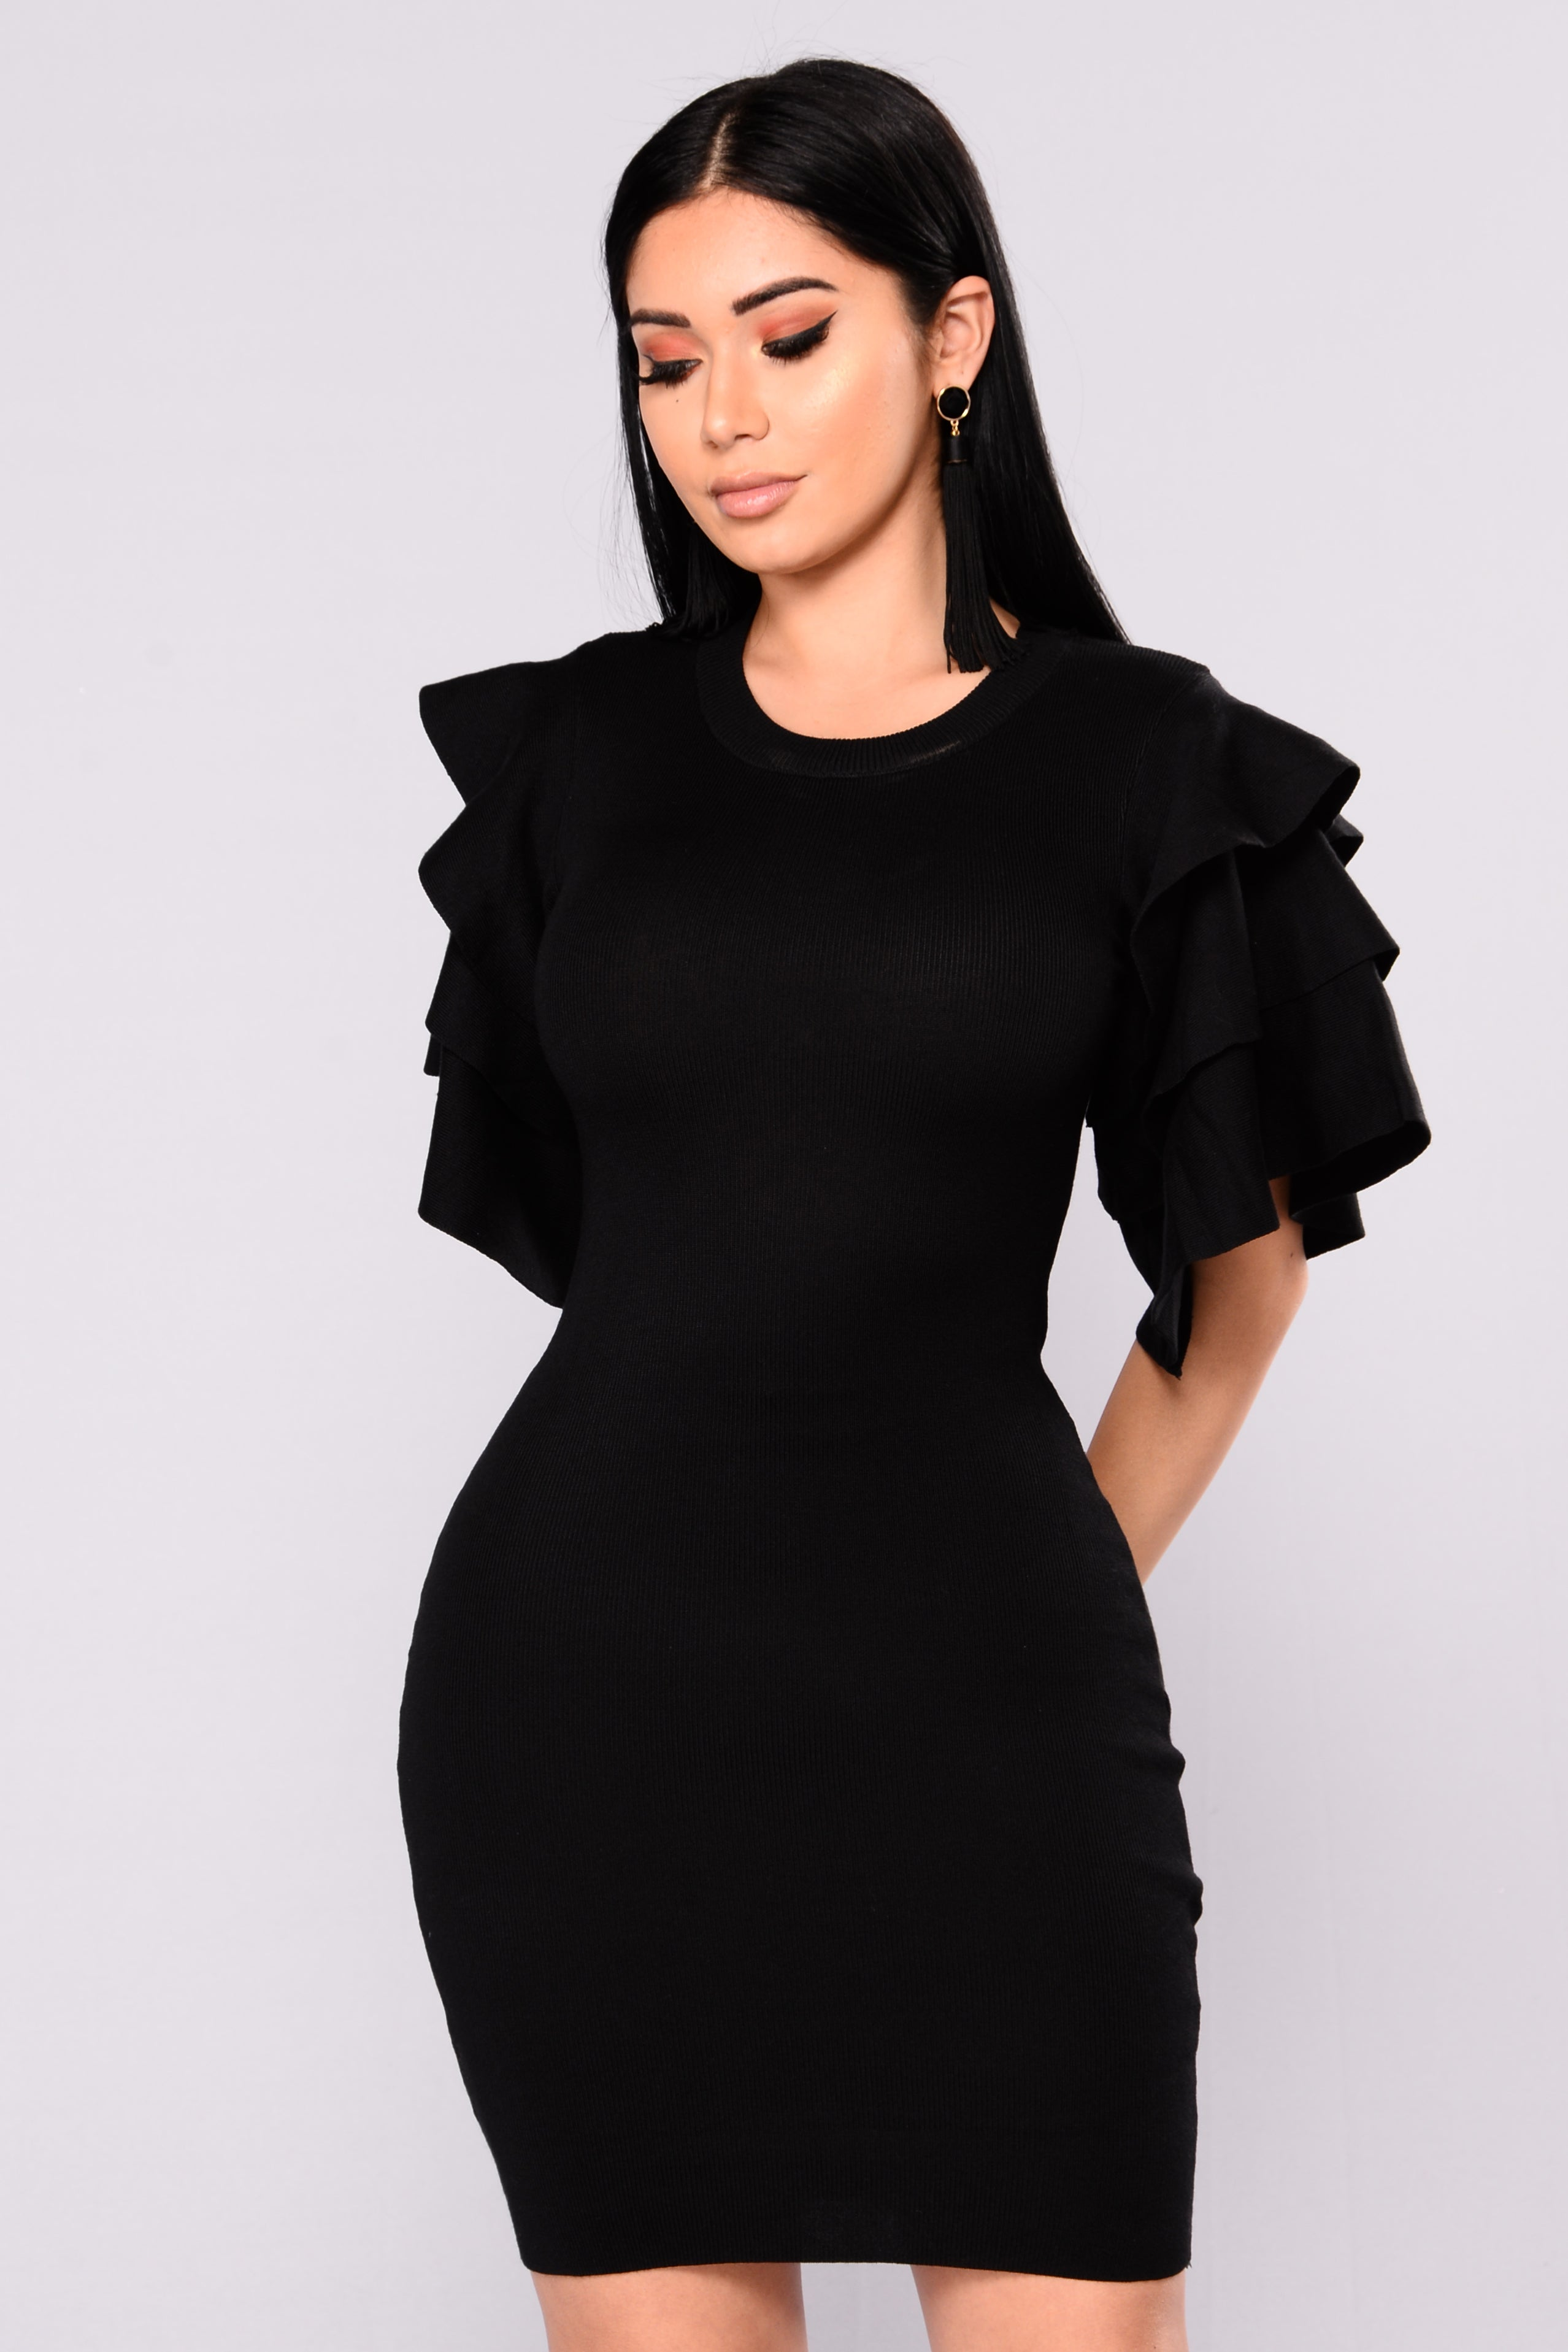 Fashion week Knit Black dress pictures for woman